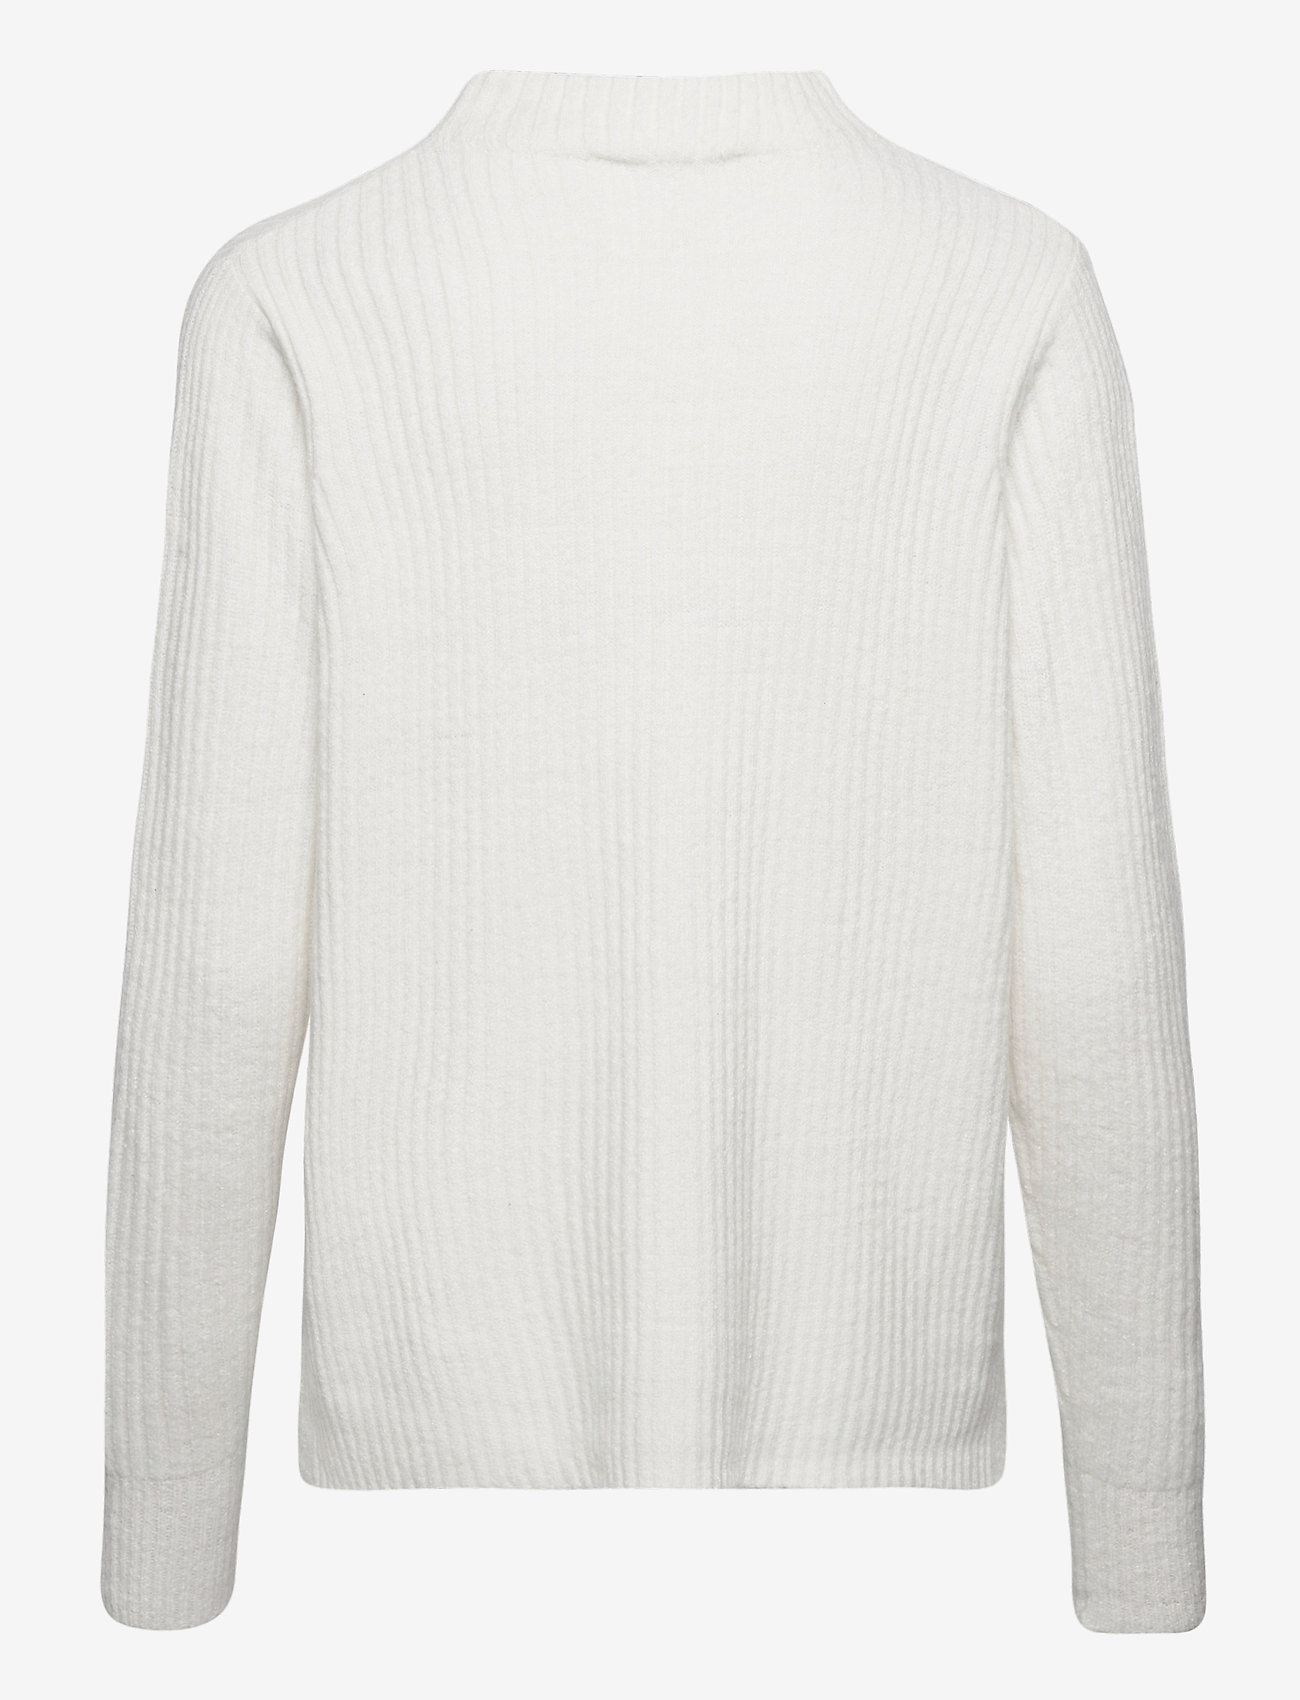 b.young - BYNORA JUMPER 2 - - jumpers - off white - 1